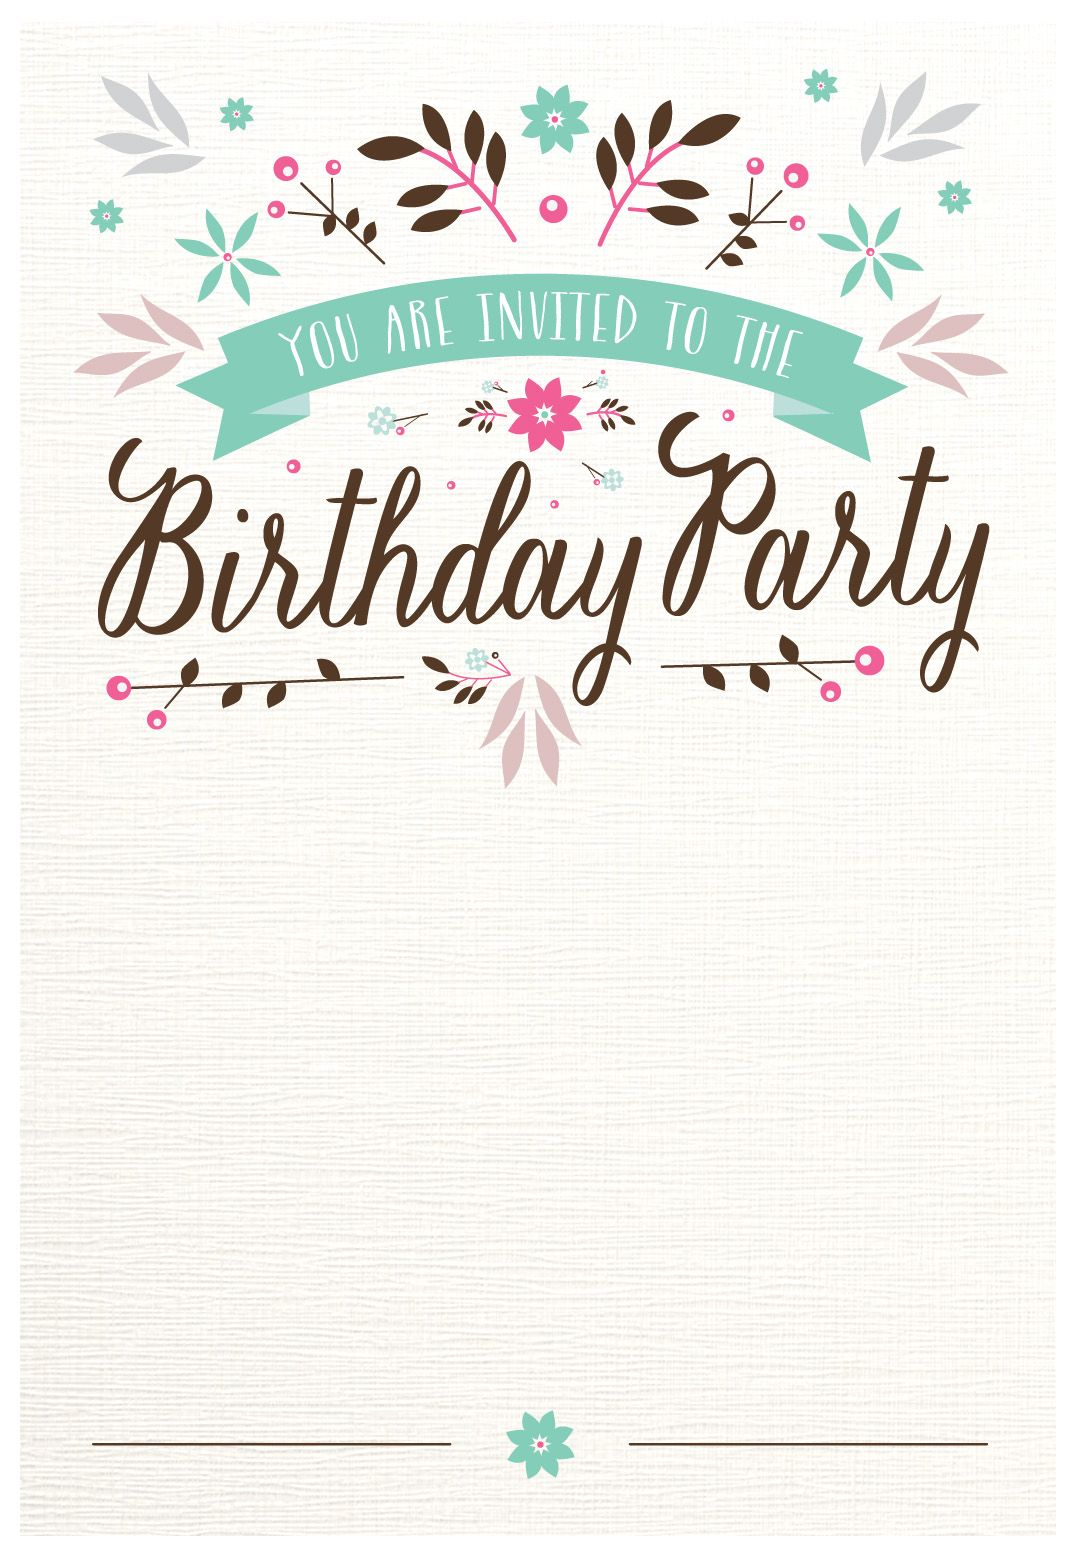 Flat Floral Free Printable Birthday Invitation Template - Free photo party invitation templates